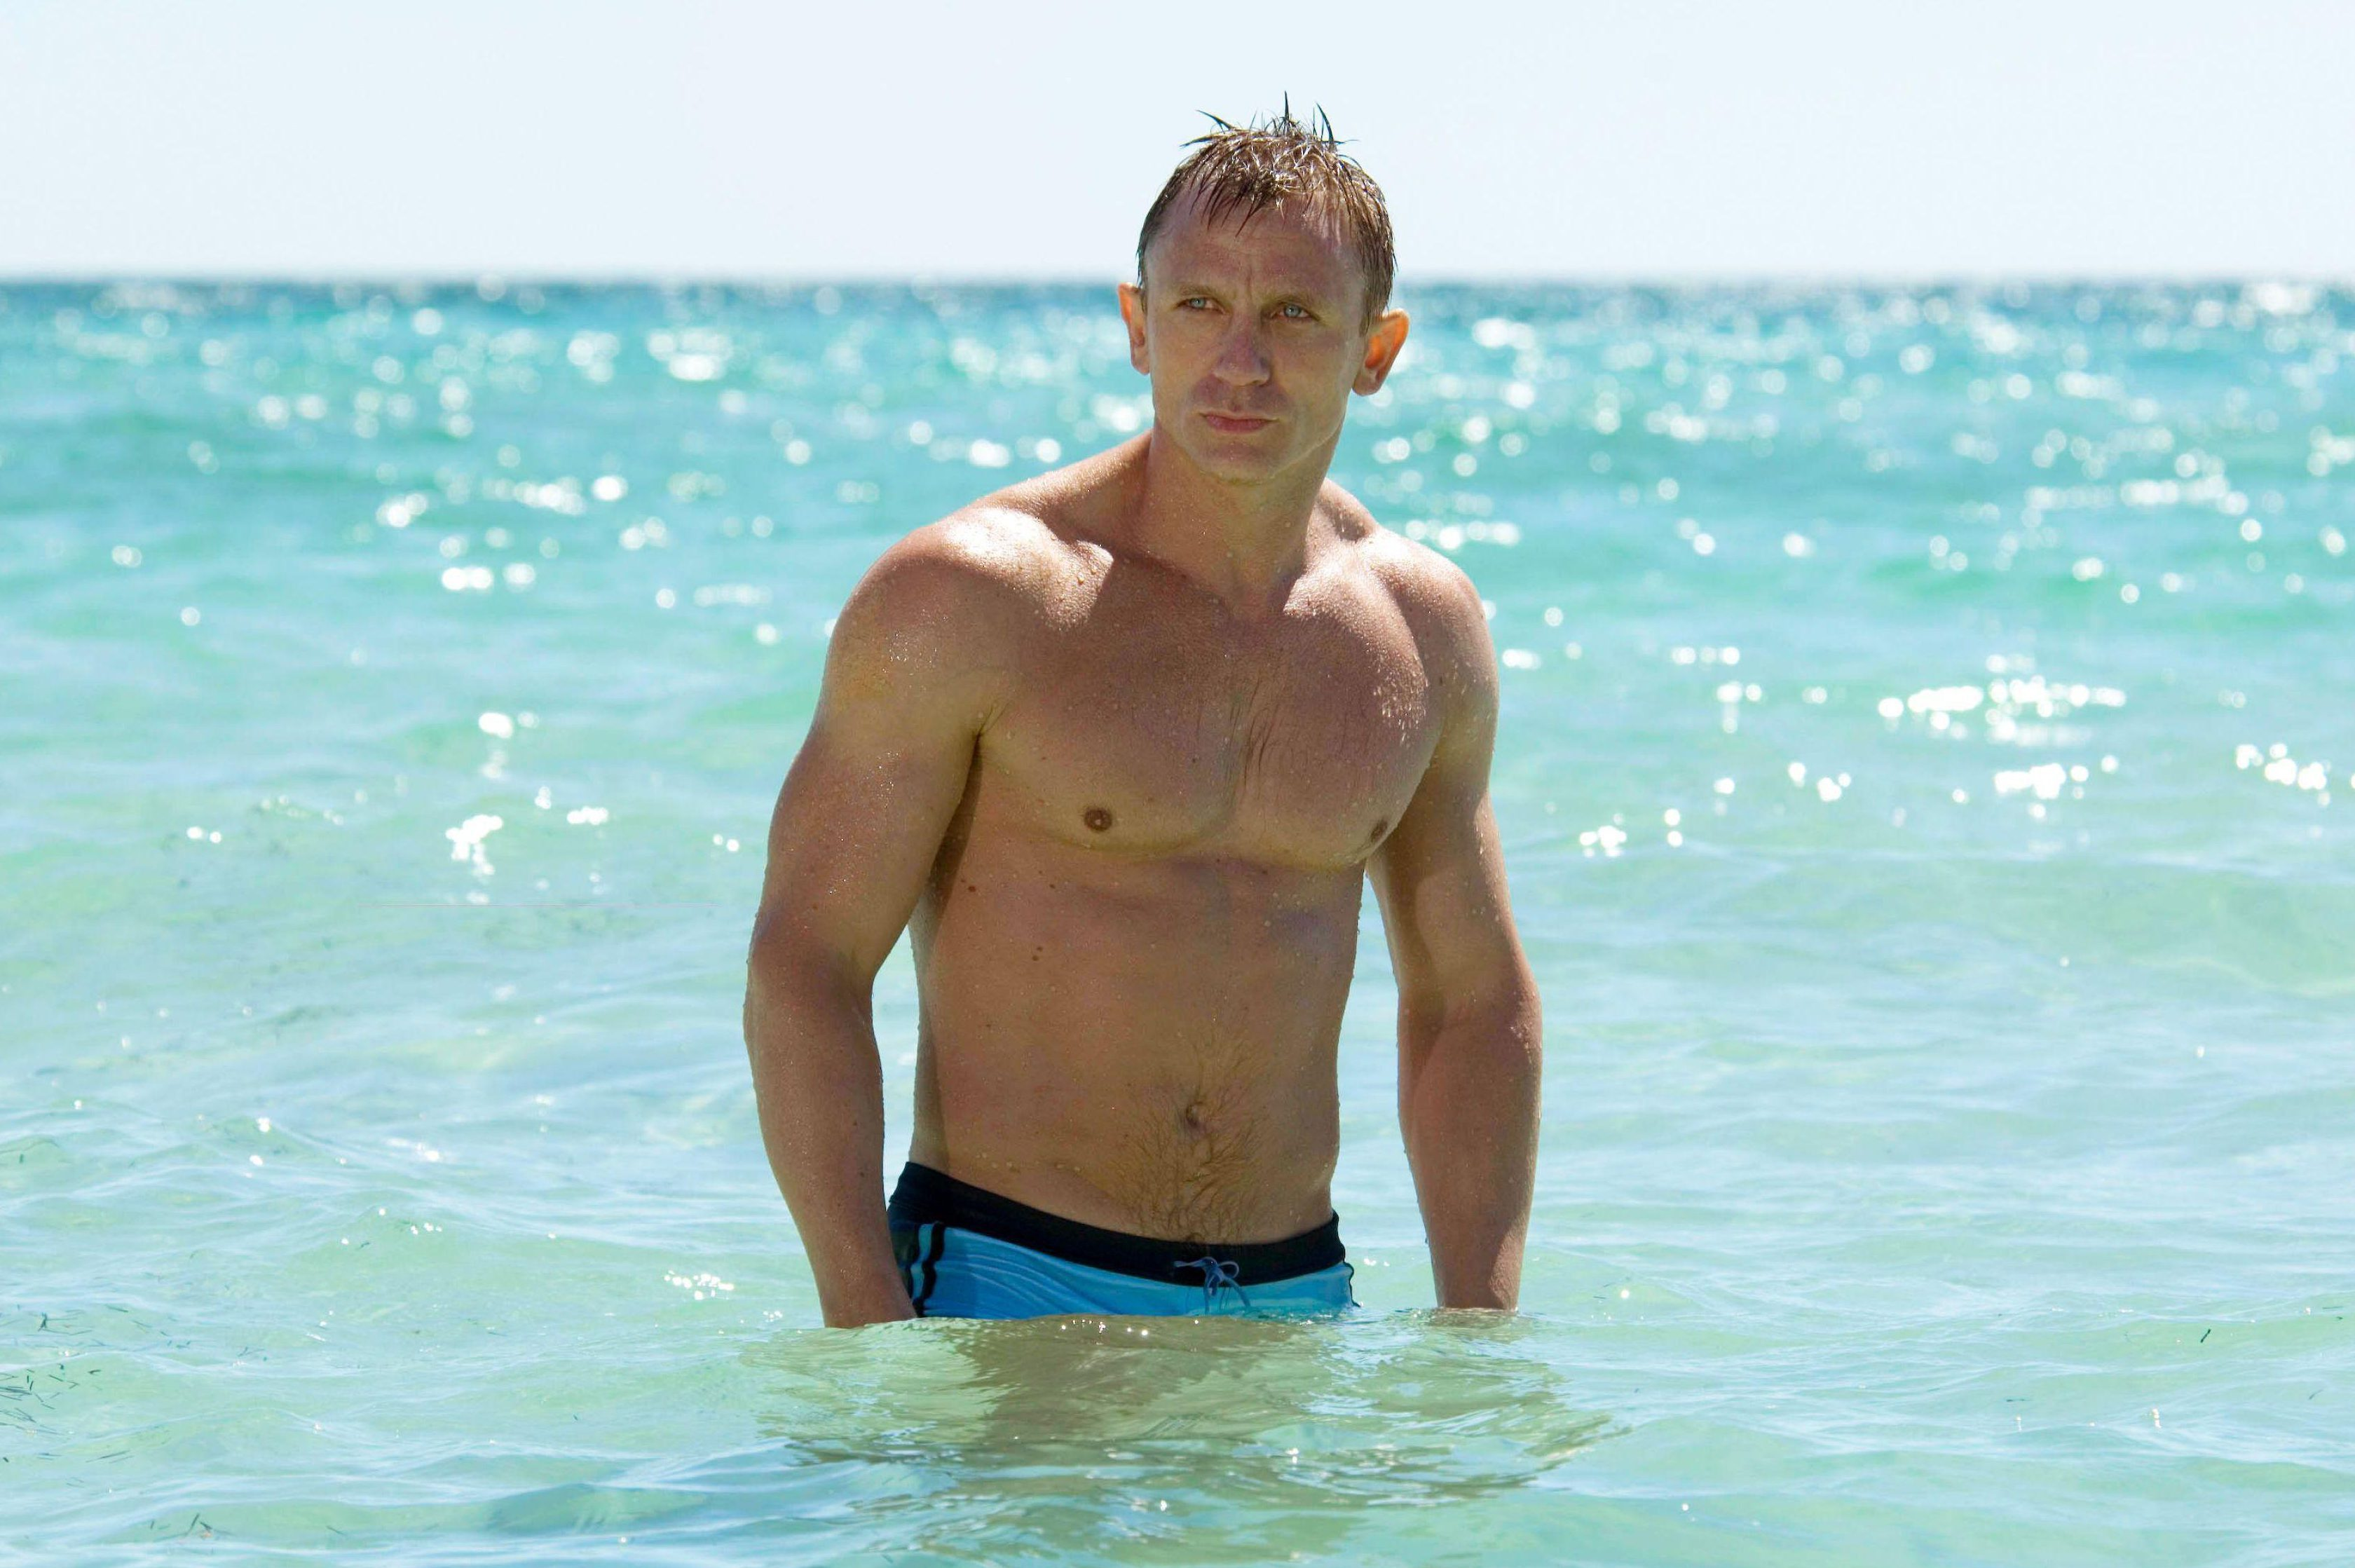 Is Daniel Craig married, how old is he, how many James Bond films has he done and what's his net worth?